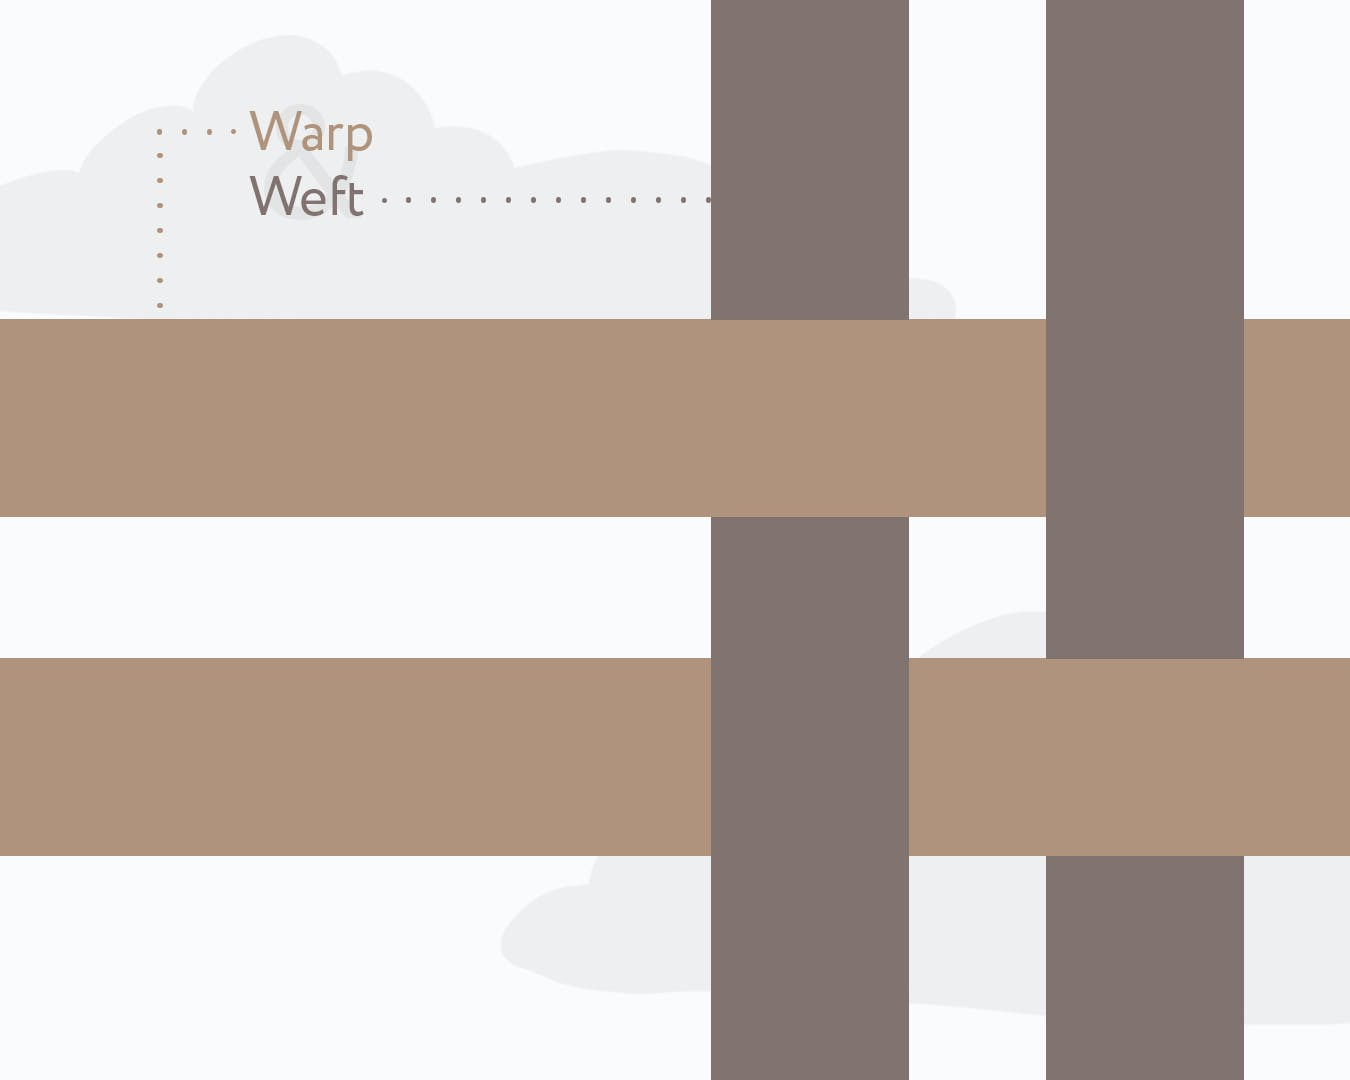 illustration showing warp and weft threads in percale sheets